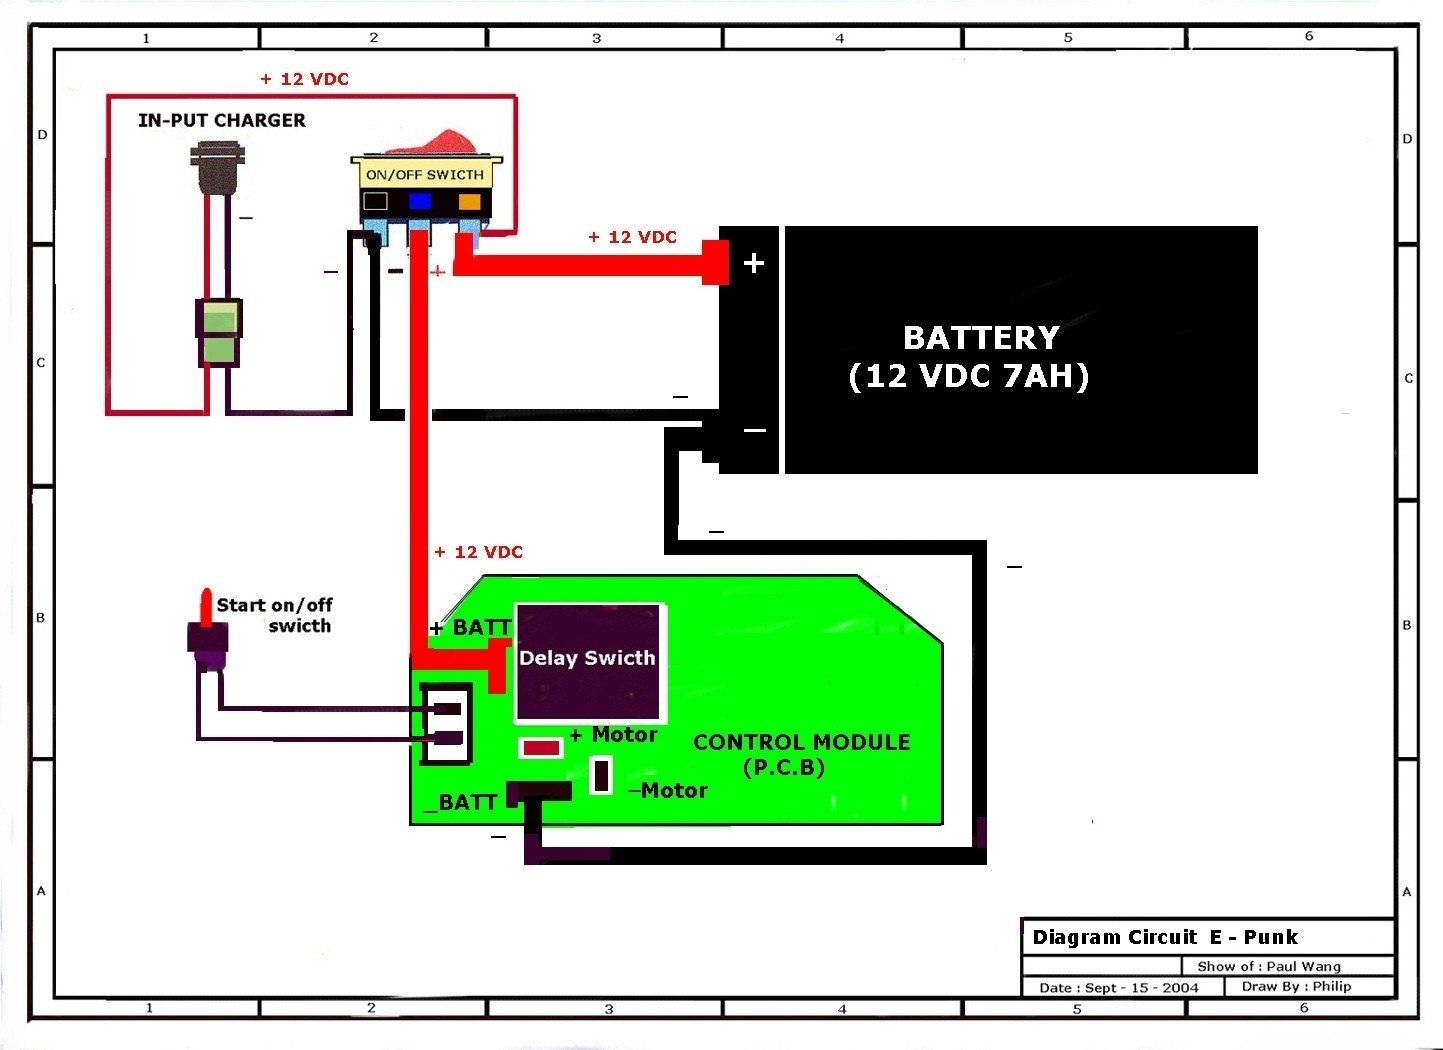 hight resolution of motorized bicycle wiring diagram wiring diagram image for motorized bicycle wiring diagram